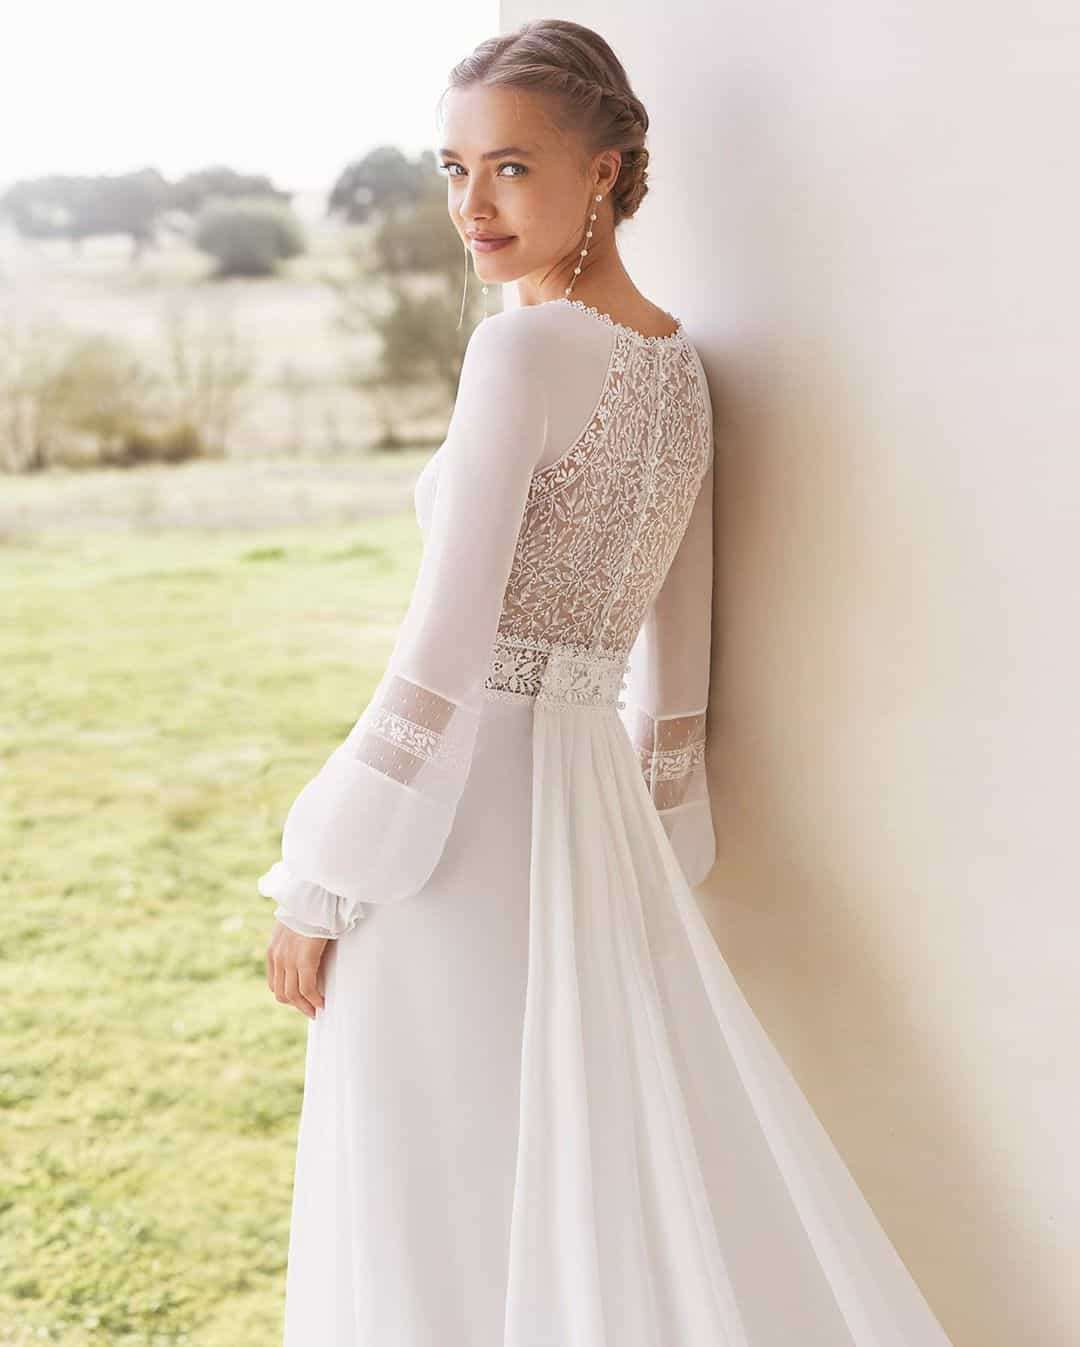 Specially Outstanding and Authentic Wedding Dresses by Rosa Clará